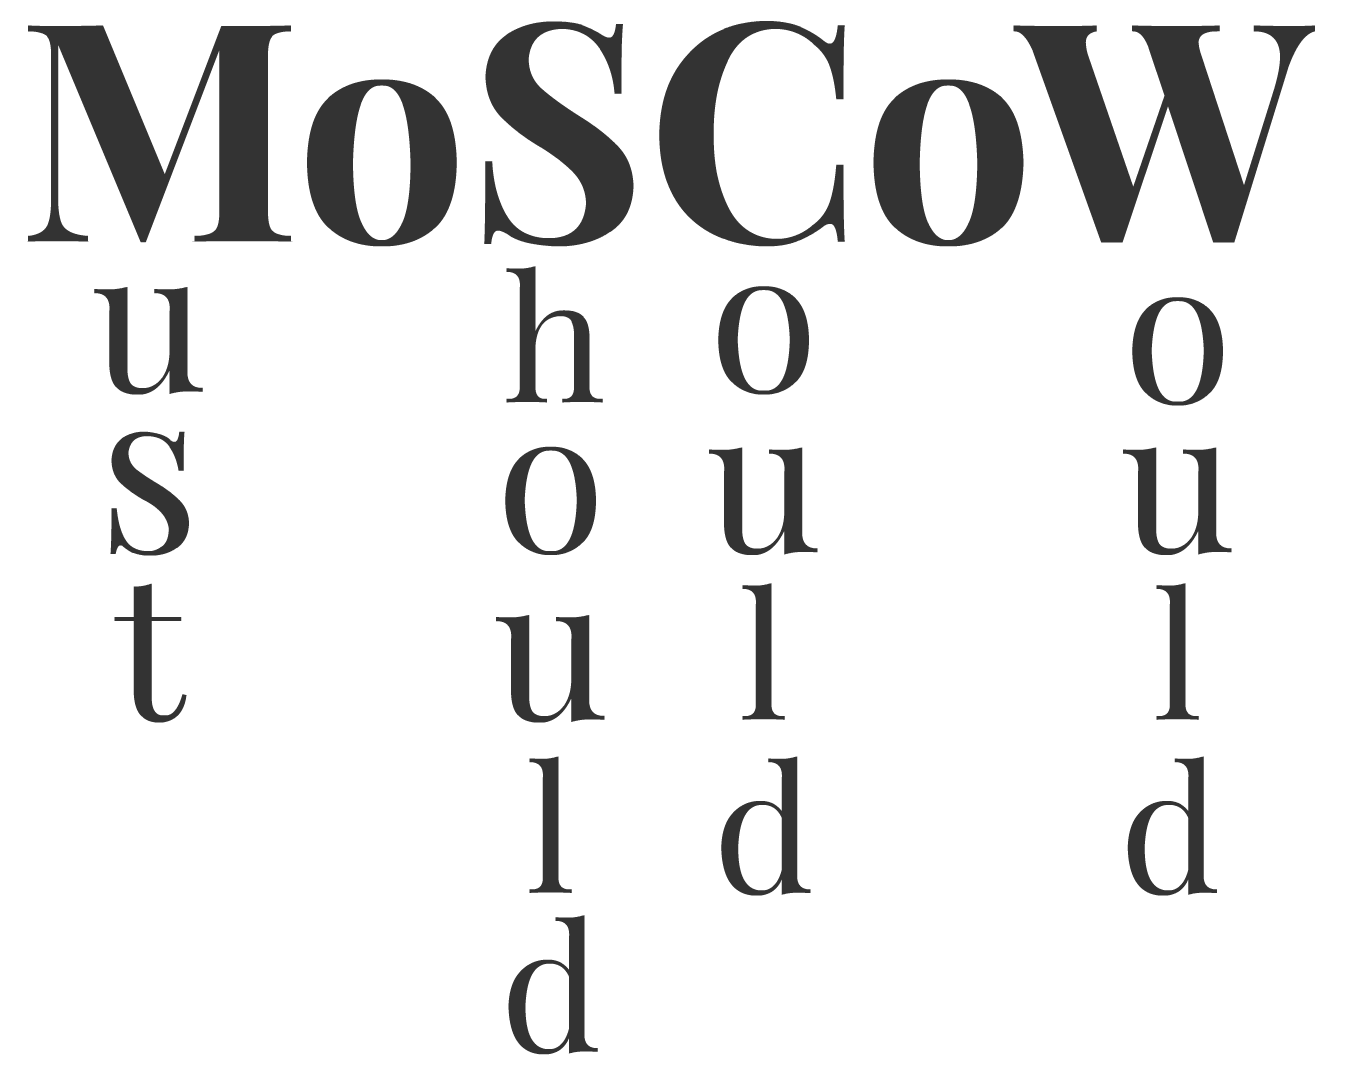 moscow_technika.png